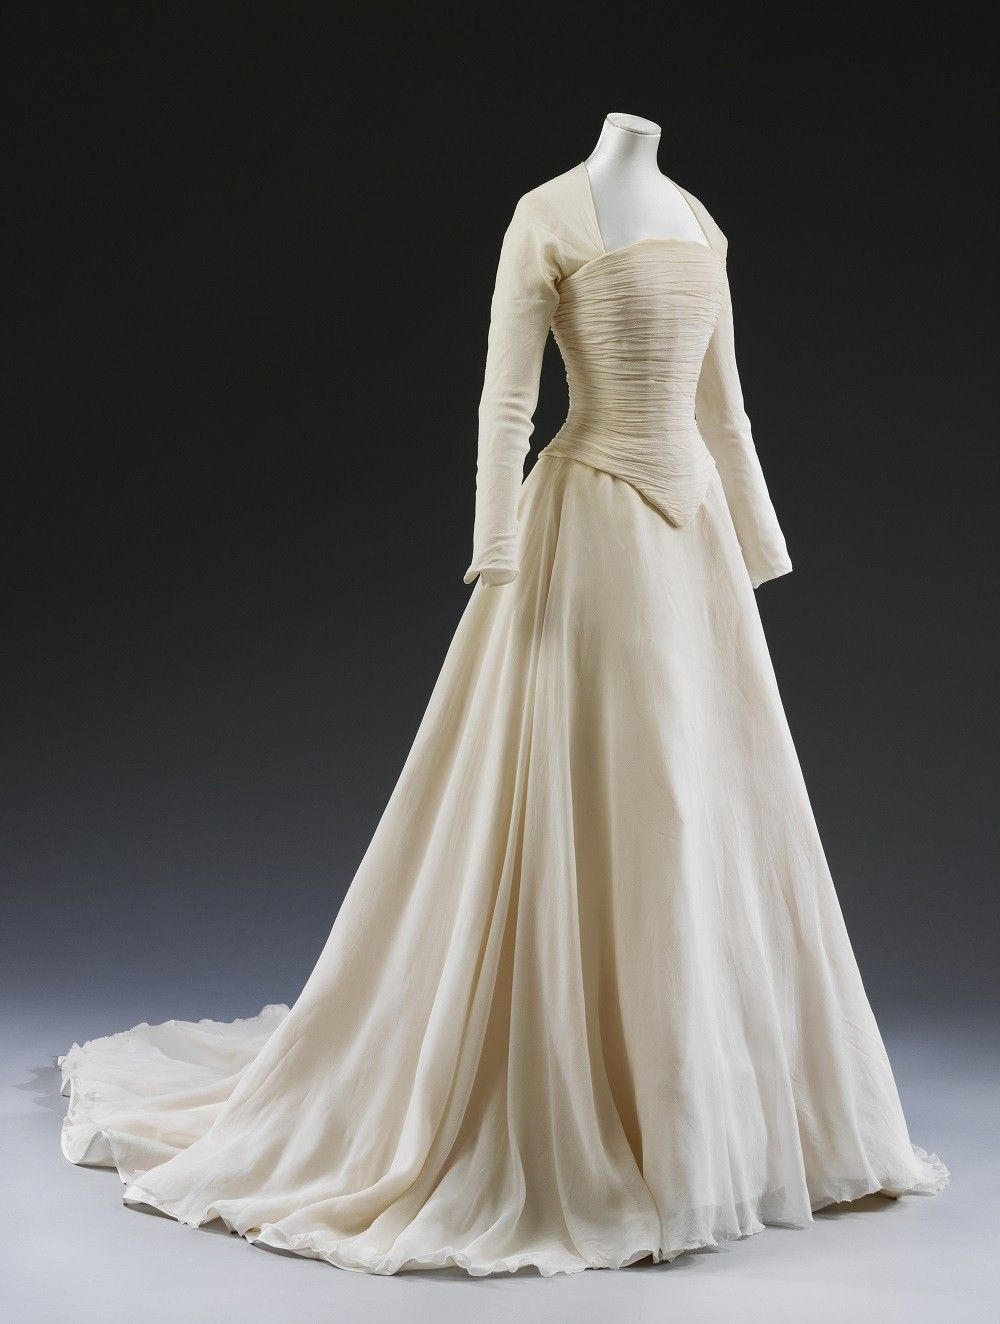 16th Century Wedding Dresses Images Aol Image Search Results